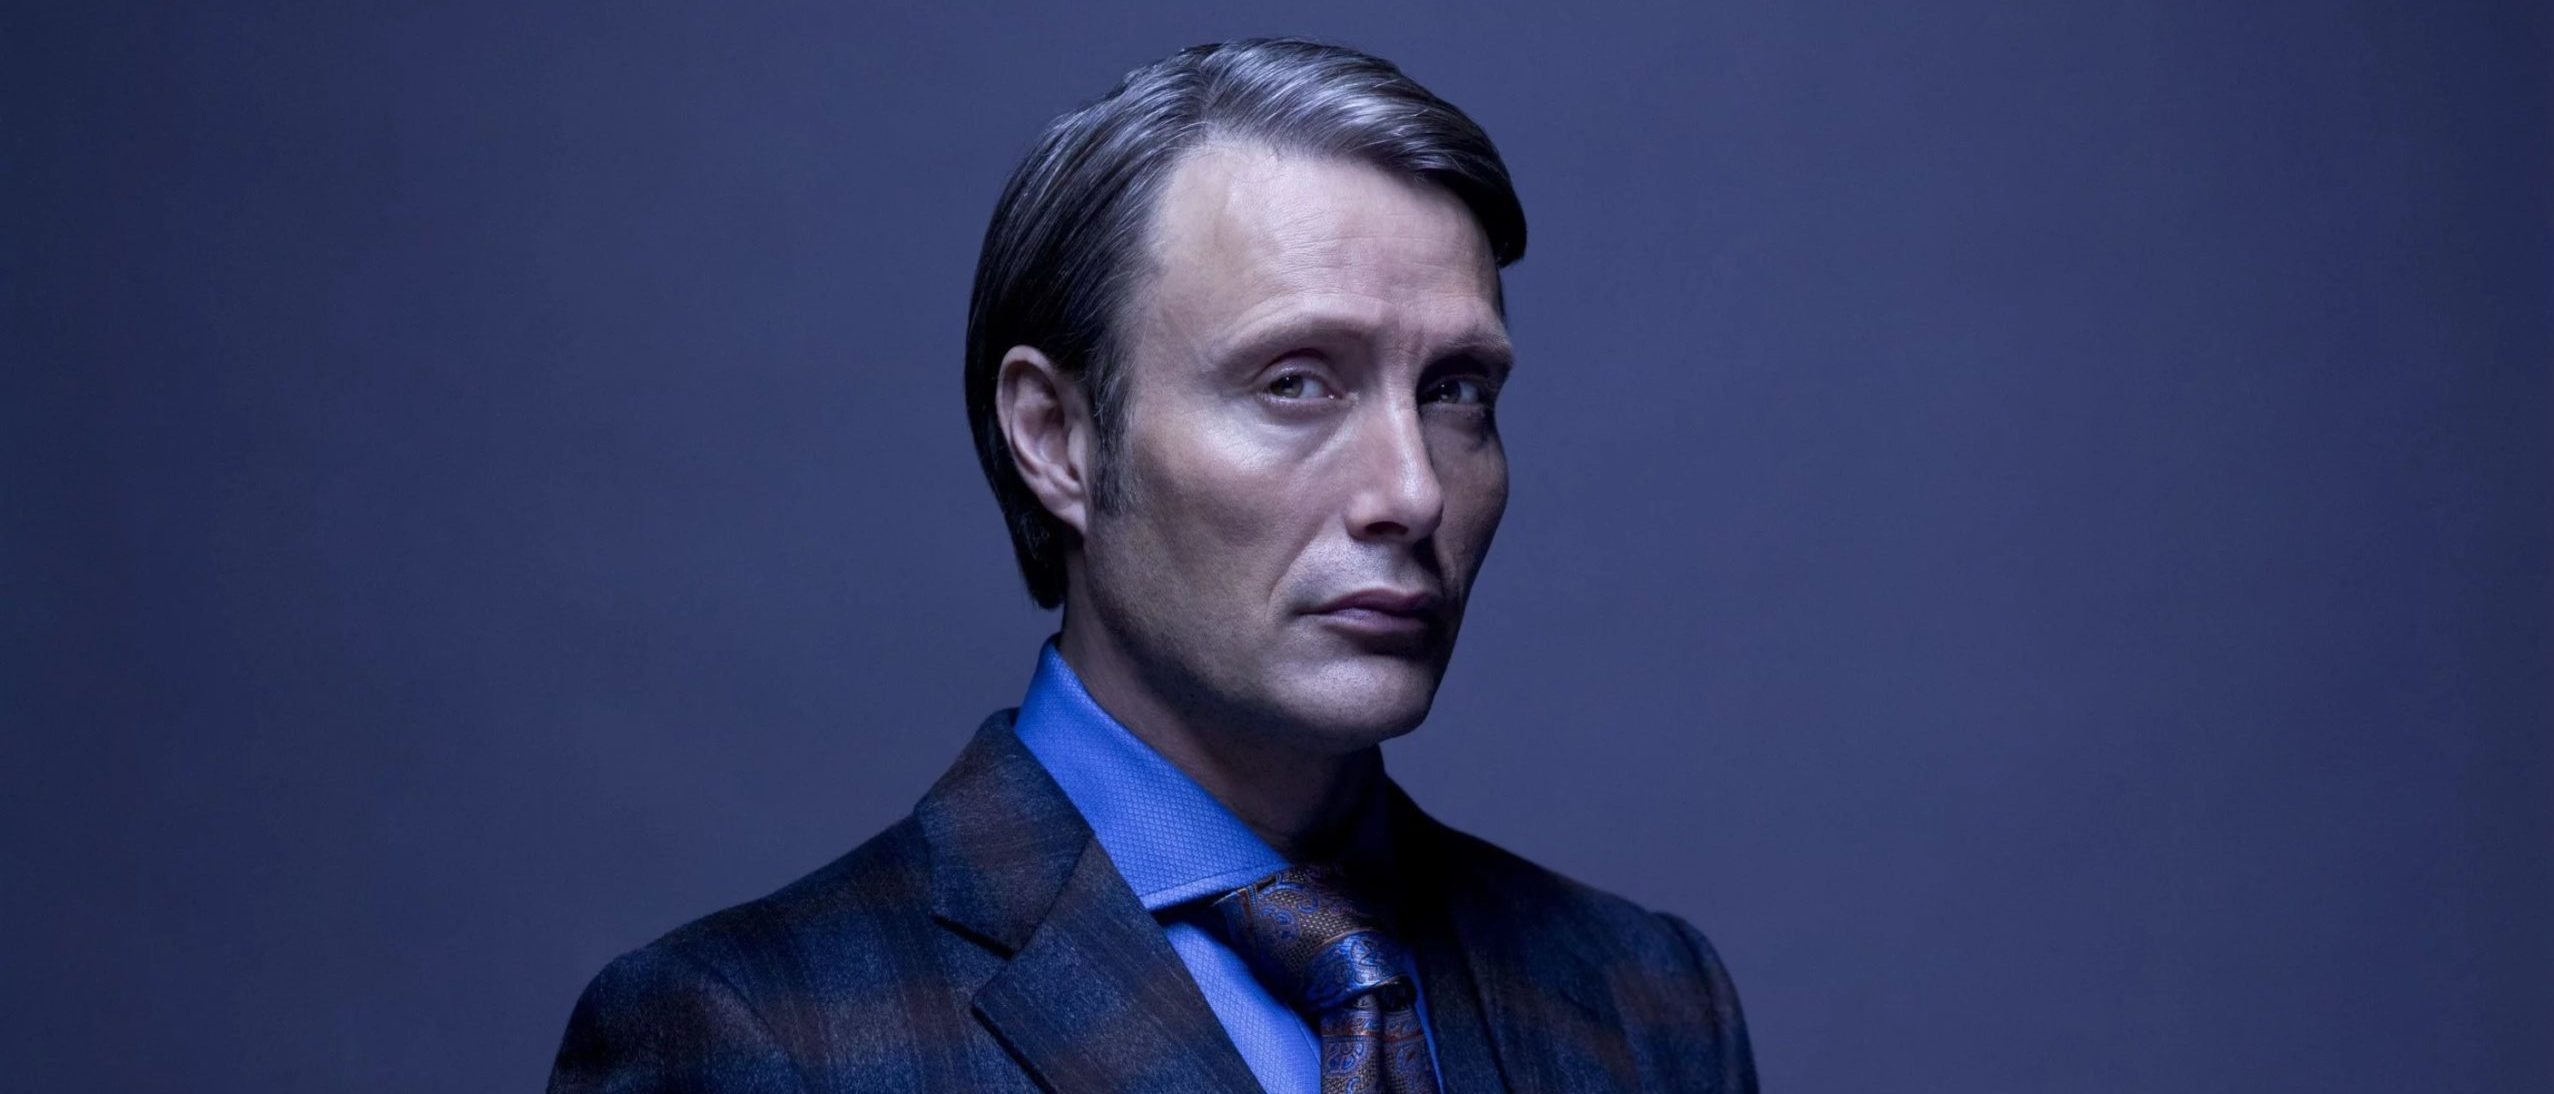 Mads Mikkelsen The Witcher Season 2